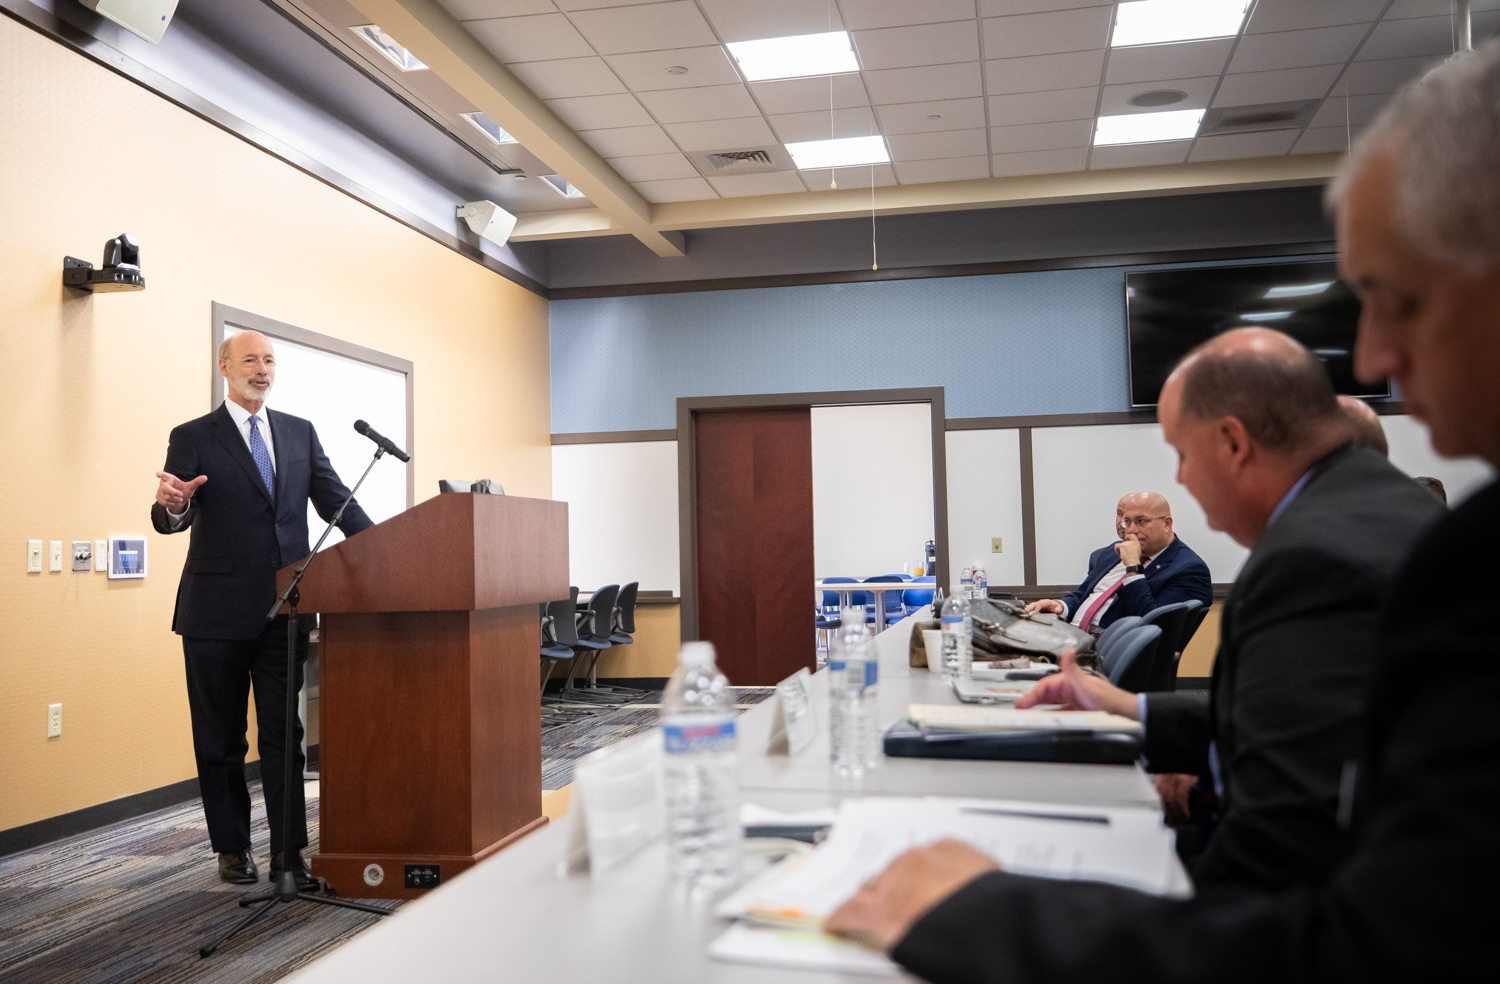 "<a href=""http://filesource.abacast.com/commonwealthofpa/photo/17598_gov_charter_schools_dz_012.jpg"" target=""_blank"">⇣ Download Photo<br></a>Pennsylvania Governor Tom Wolf responds to questions about charter school reform from Pennsylvania Association of School Administrators President, Dr. Jeffrey Fuller at a meeting of the Pennsylvania Association of School Administrators.  Governor Tom Wolfs commonsense plan to improve the educational quality of charter schools and control rising costs will save nearly $280 million a year, the governor told the Pennsylvania Association of School Administrators today. The governor has a three-part plan to fix Pennsylvanias charter school law which is regarded as one of the worst in the nation.  - Harrisburg, PA. Friday, November 15, 2019."